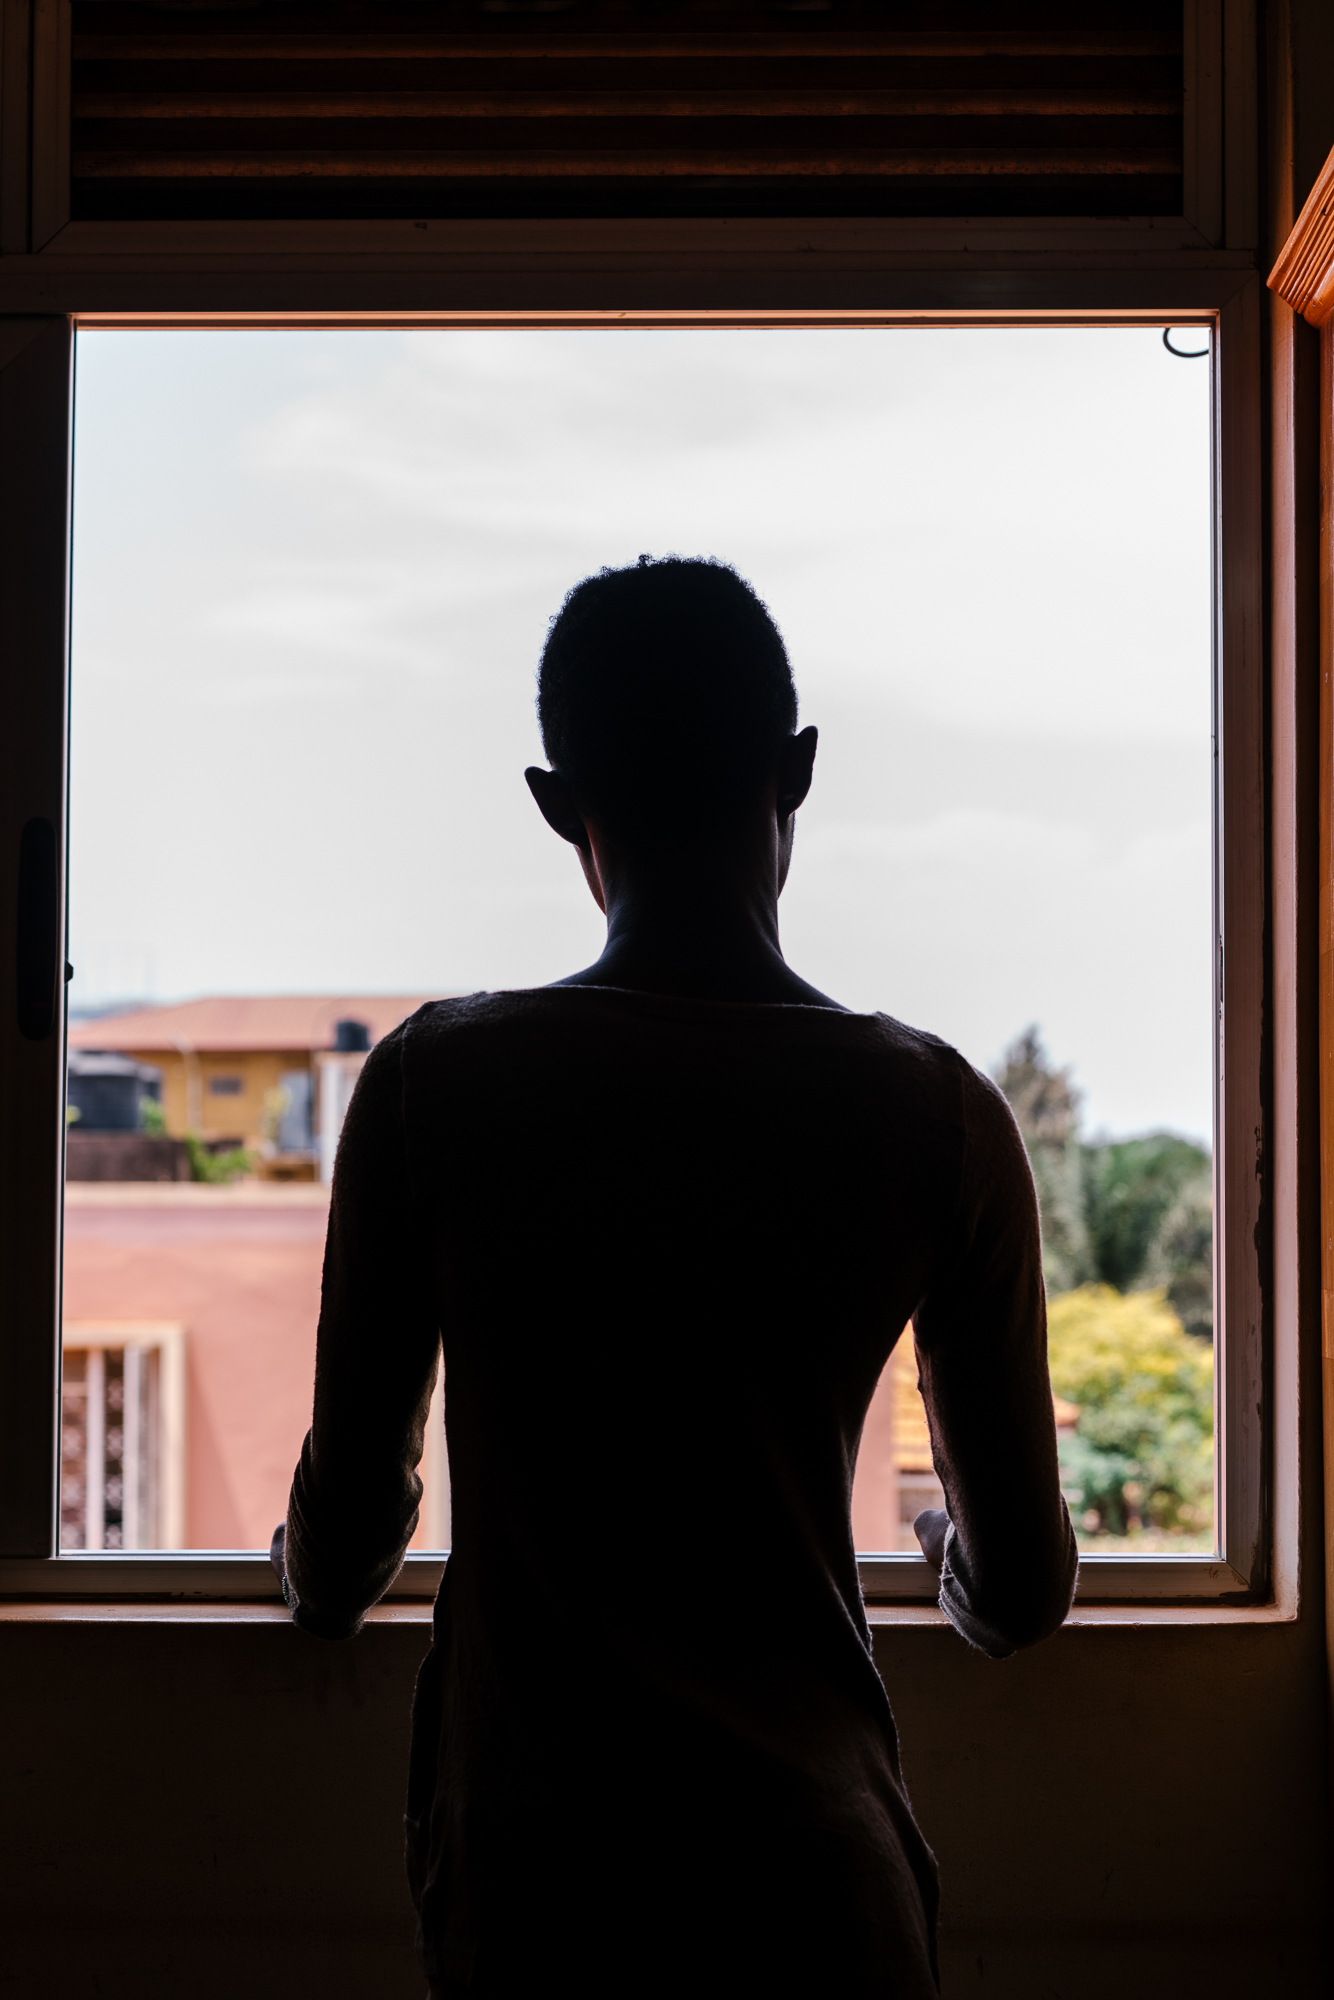 Didien, 23, a gay refugee from the Democratic Republic of the Congo, poses for a portrait in Kampala. He has had trouble starting the resettlement process because of Uganda's anti-LGBT policies and so lives in limbo.